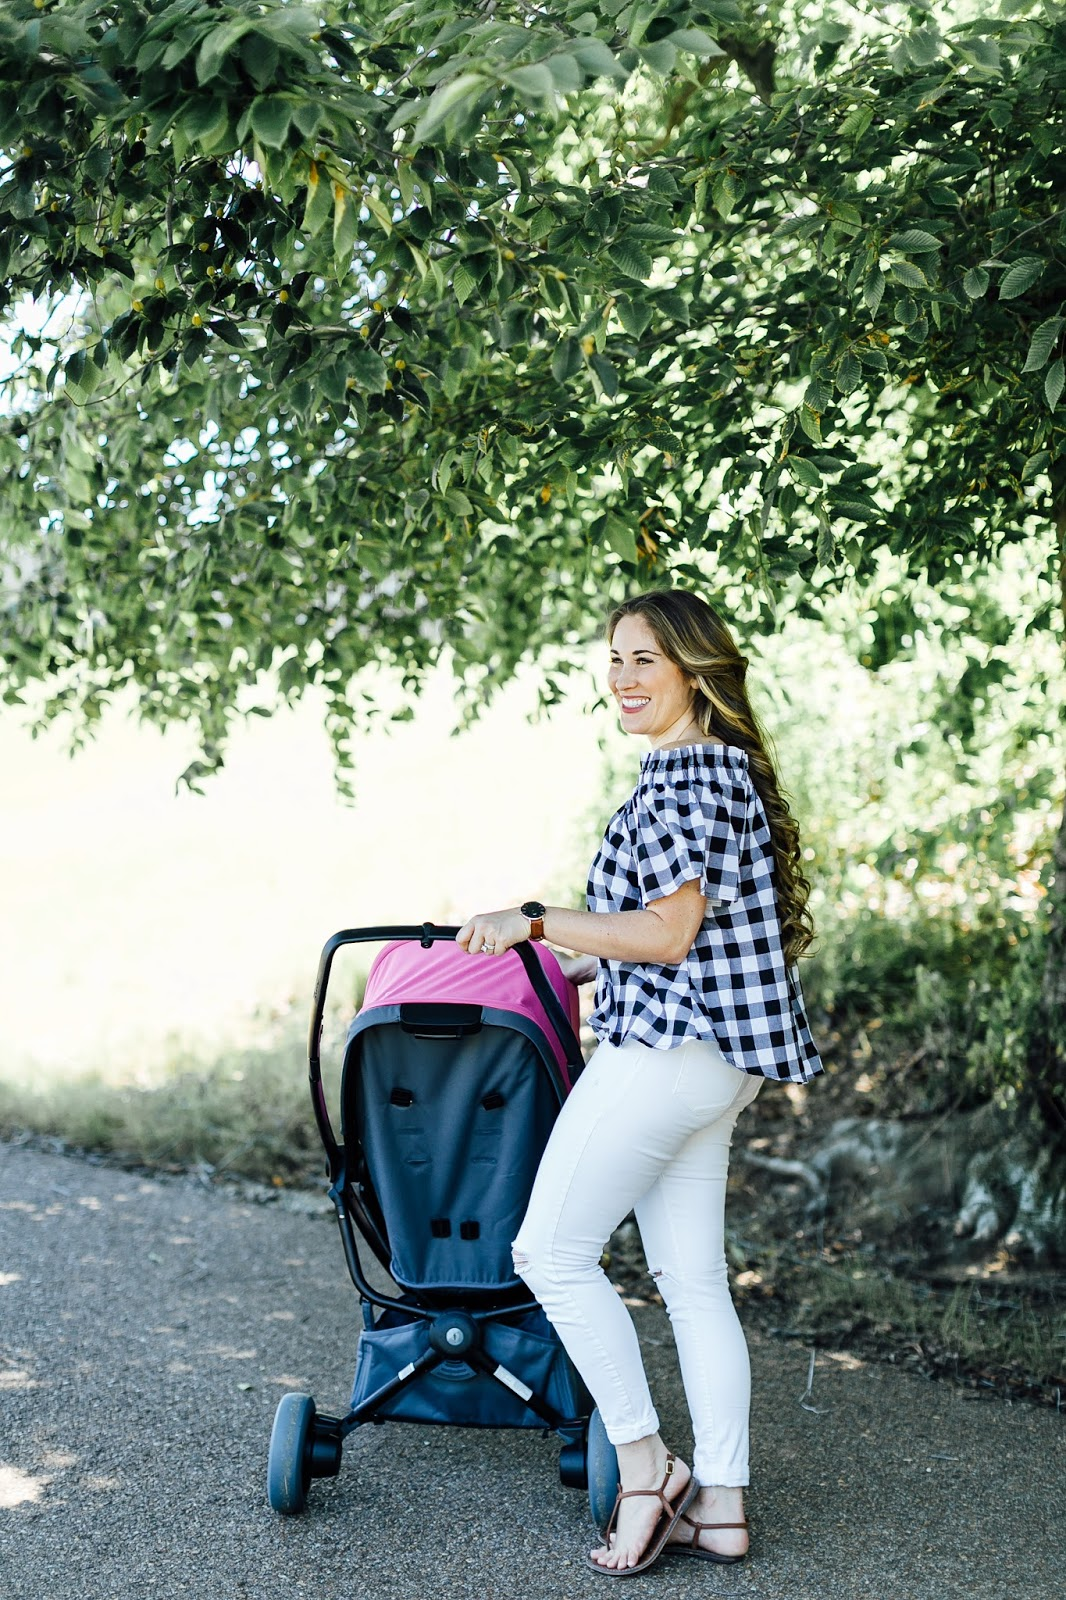 5 Activities For Toddlers on Stroller Walks by popular lifestyle blogger Laura of Walking in Memphis in High Heels